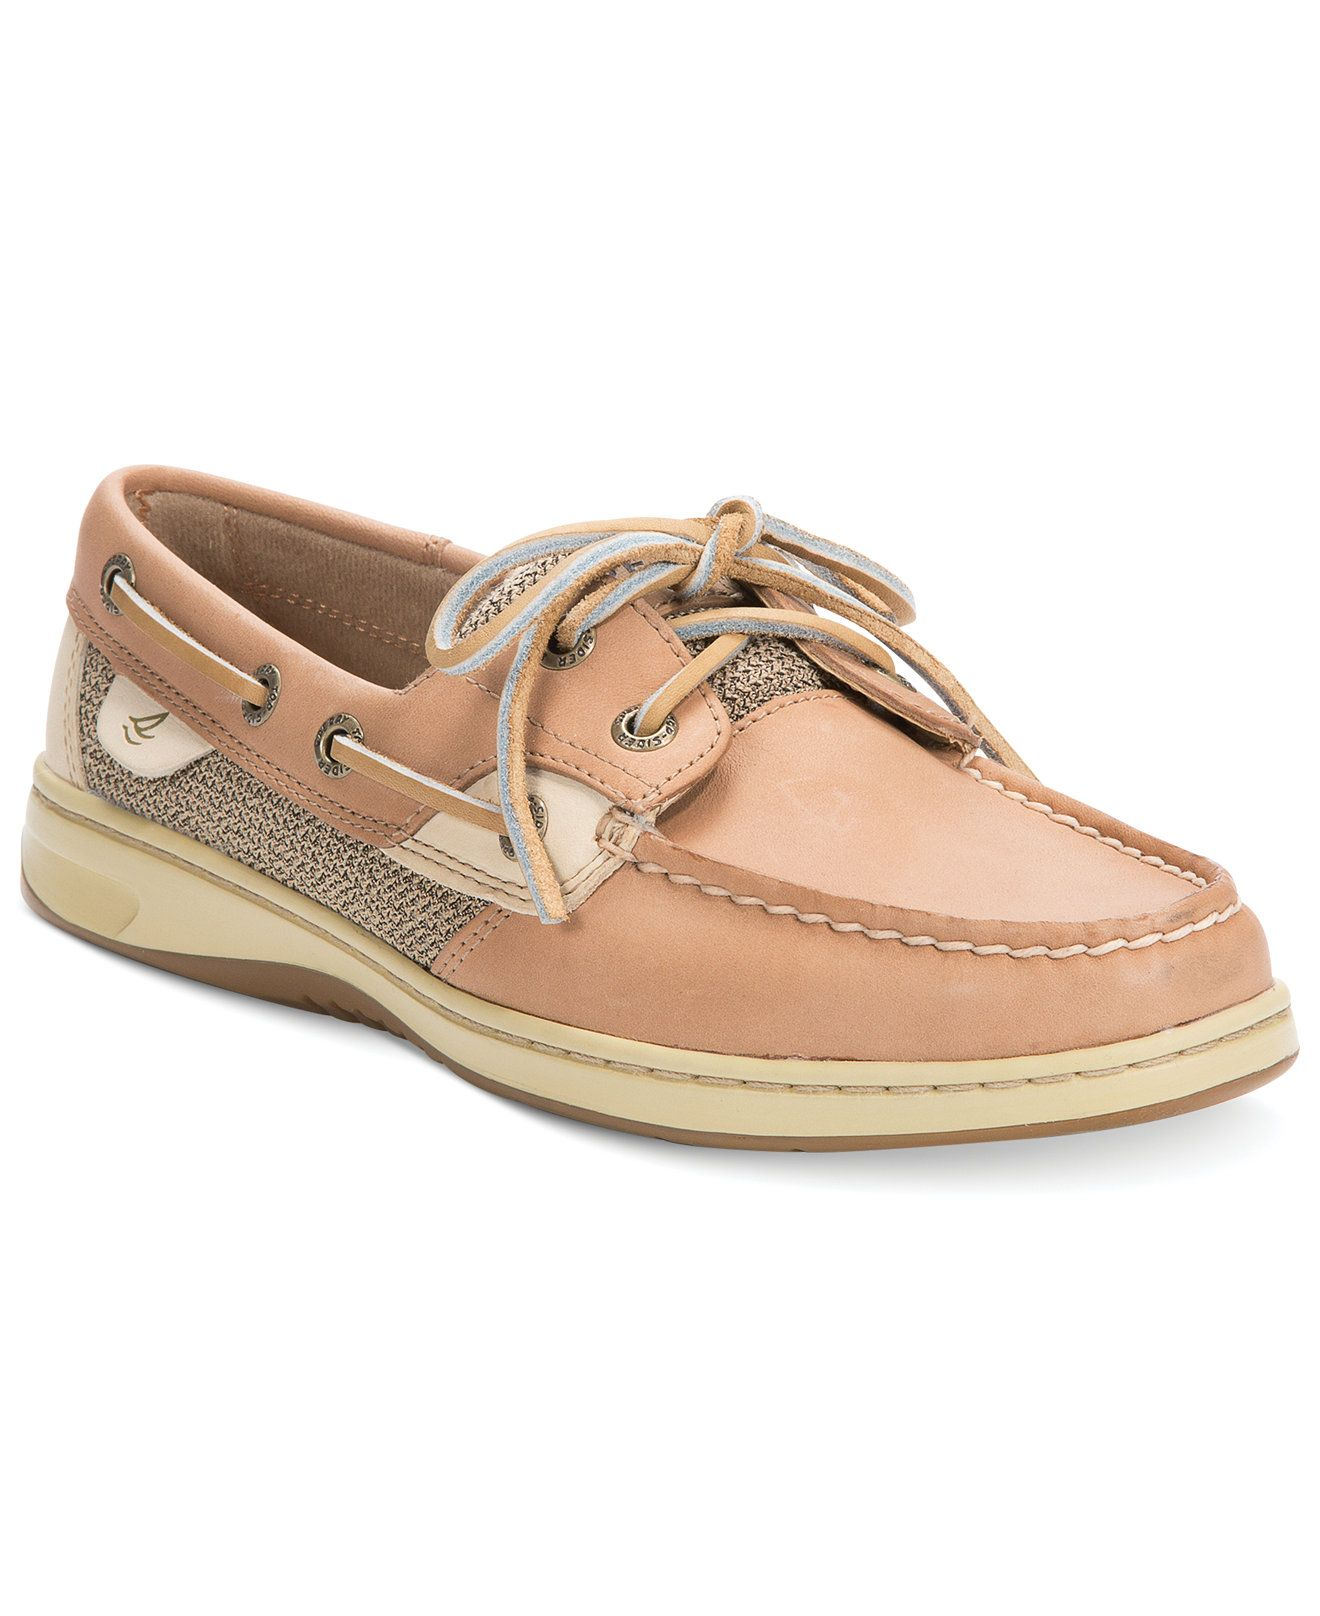 Shop the latest women's shoes from adidas, New Balance, Vans, Puma, UGG, and more. Free shipping and free returns on all orders. day return policy. Sperry Womens Authentic Original 2 Eye Sahara Sale. Sperry Womens Crest Vibe Linen Navy $ $ Sale. Sperry Womens .